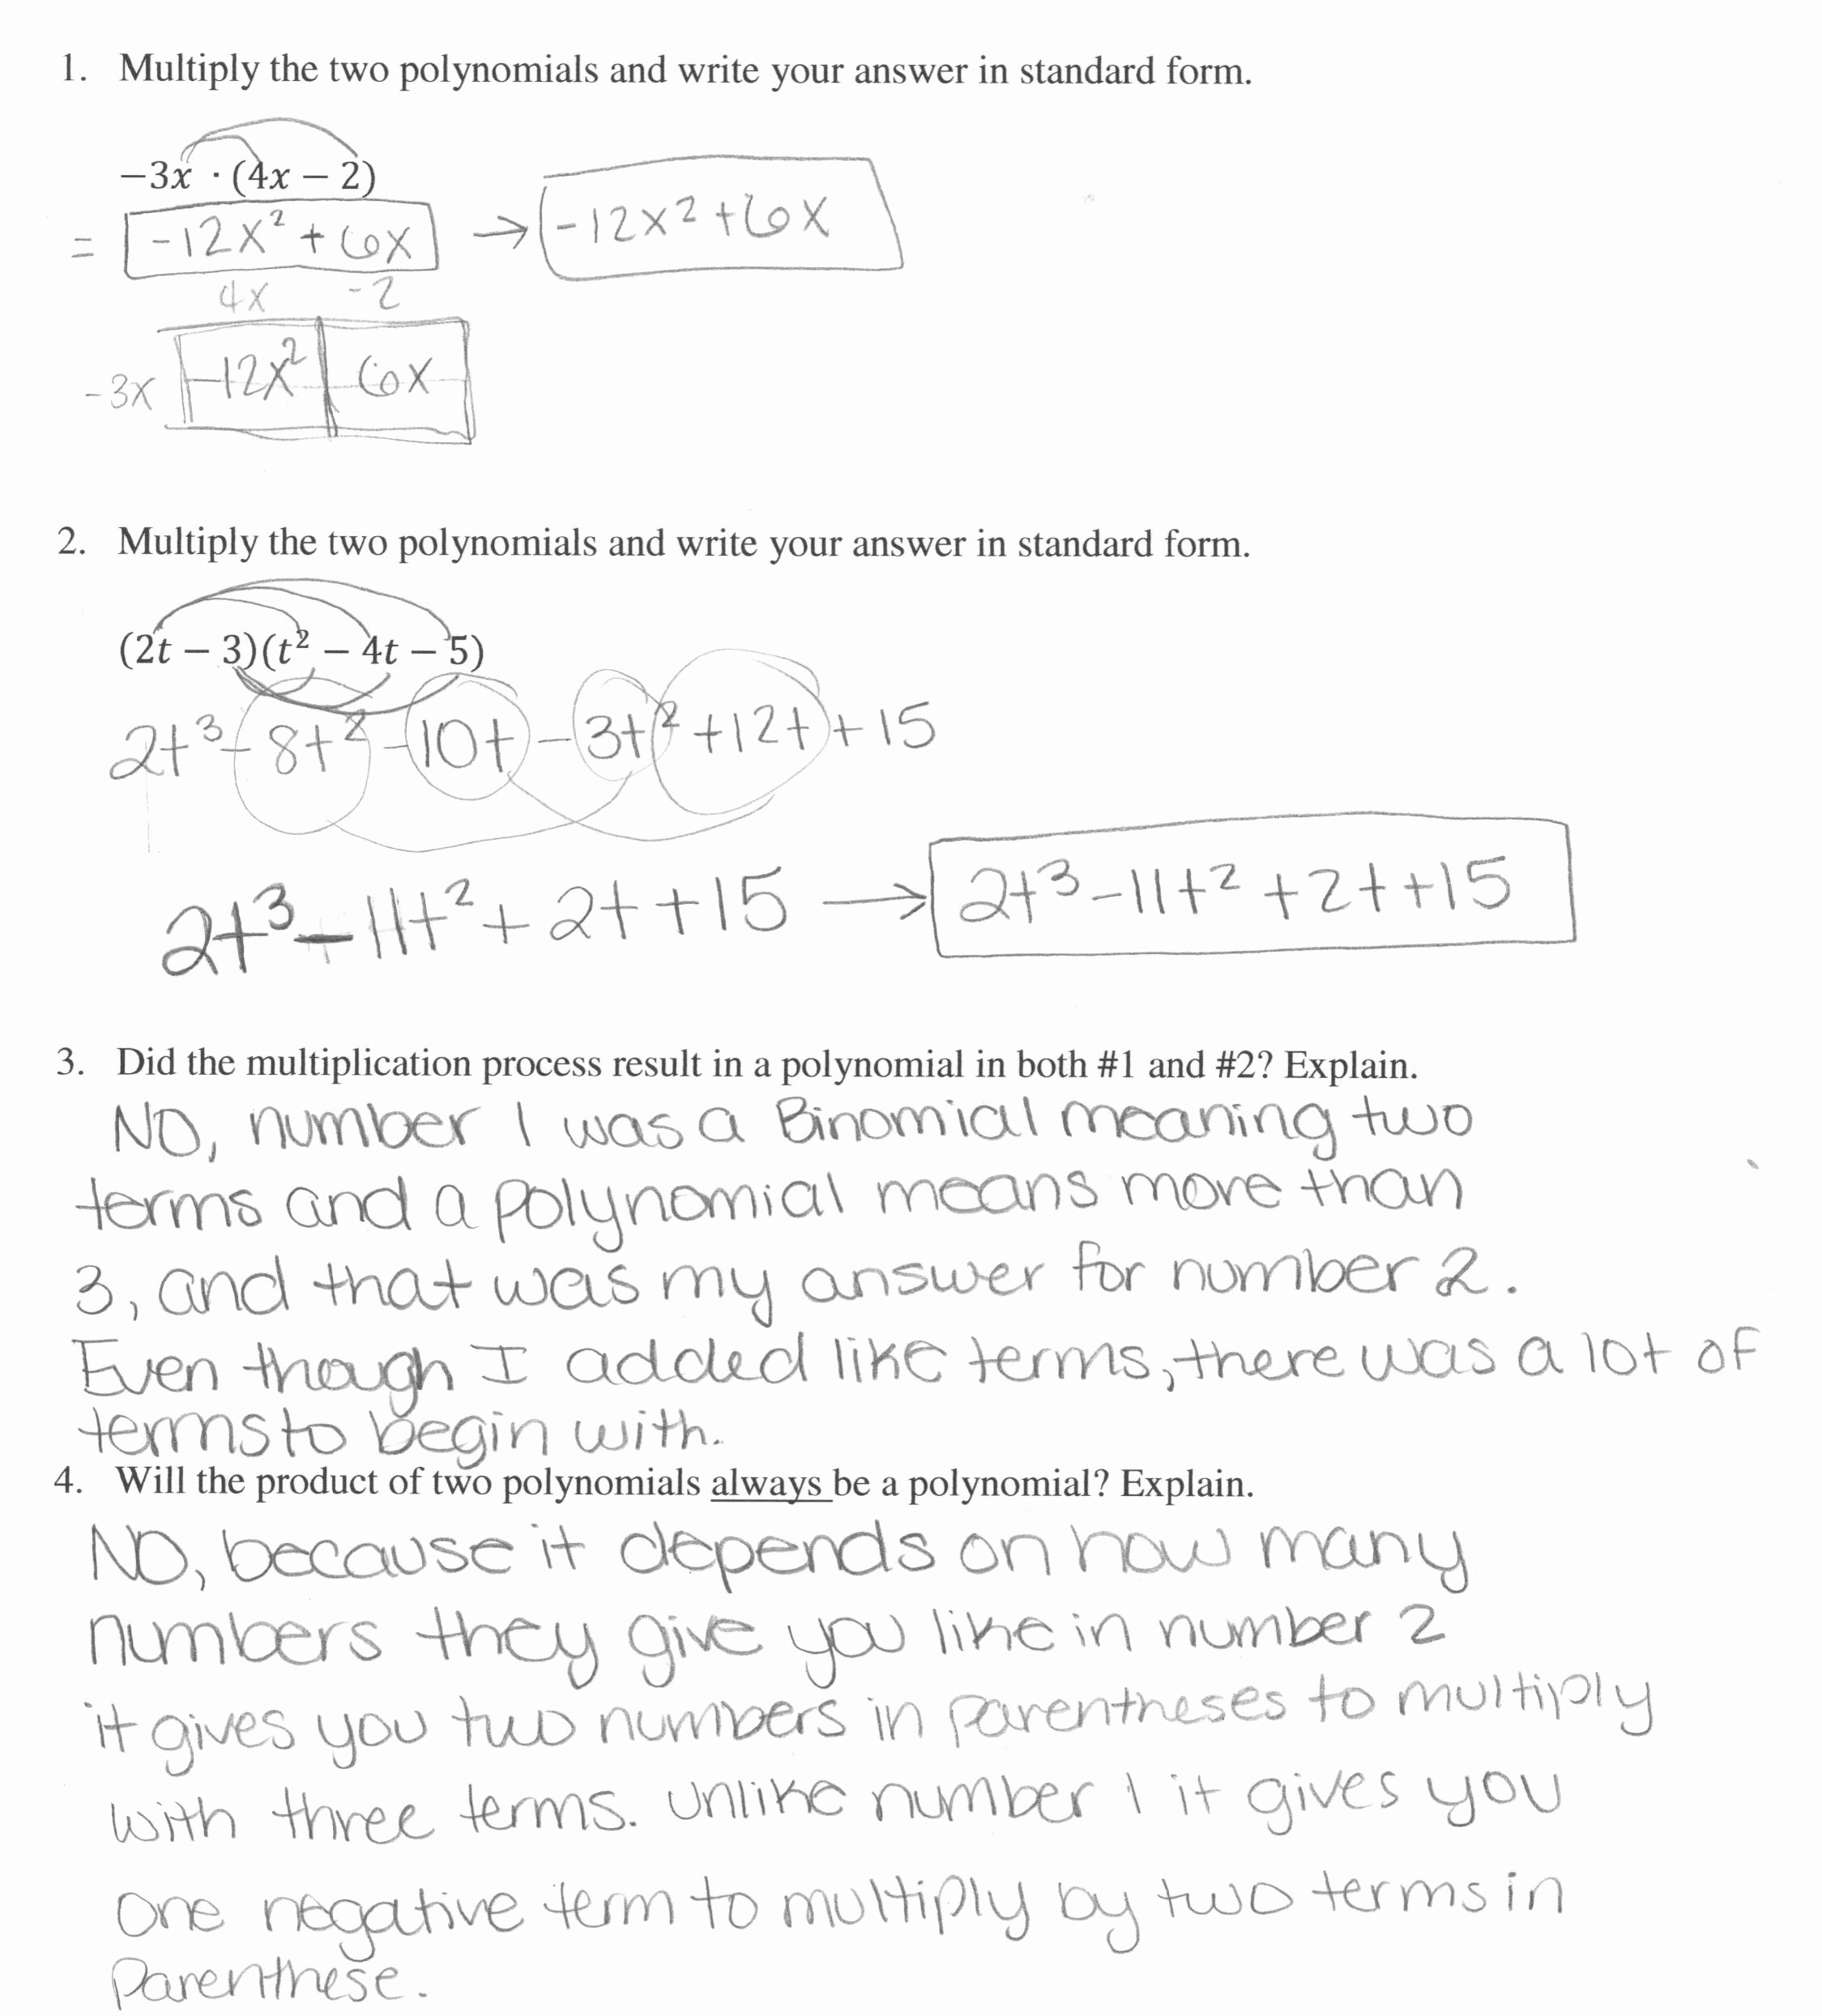 Multiplying Polynomials Worksheet Answers Unique Multiplying Polynomials 1